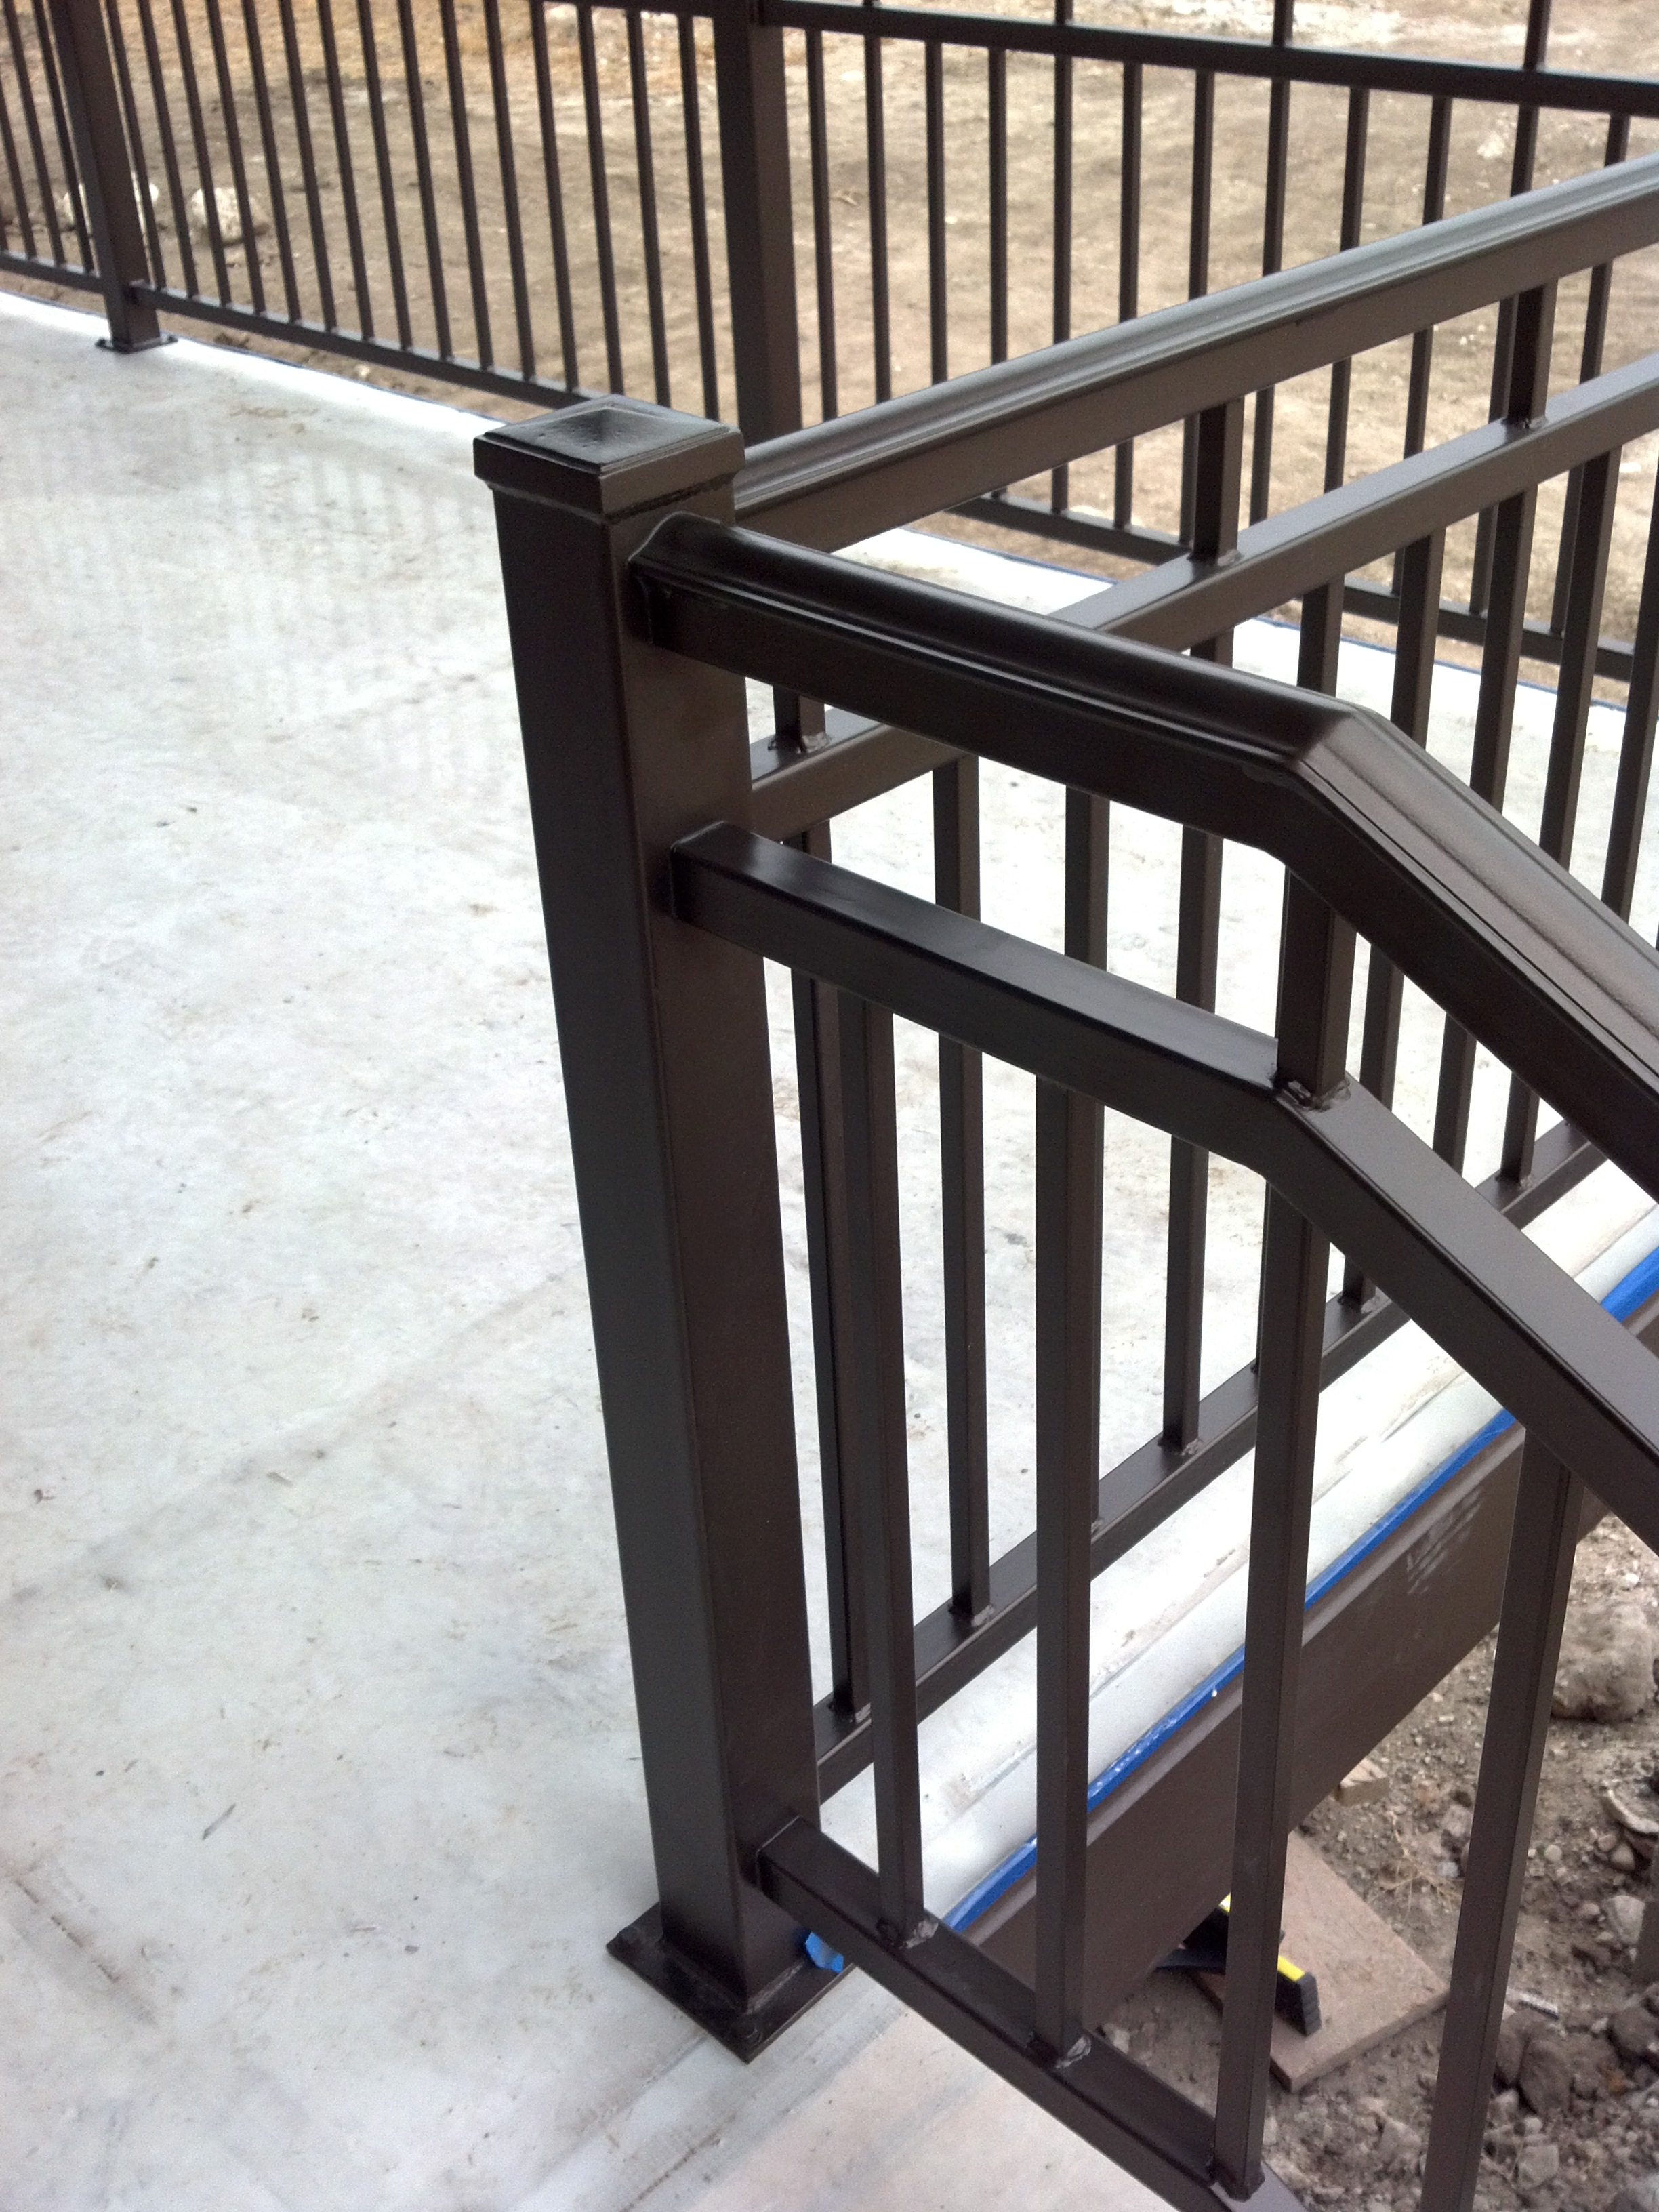 Decorative powder coated rail on a patio.